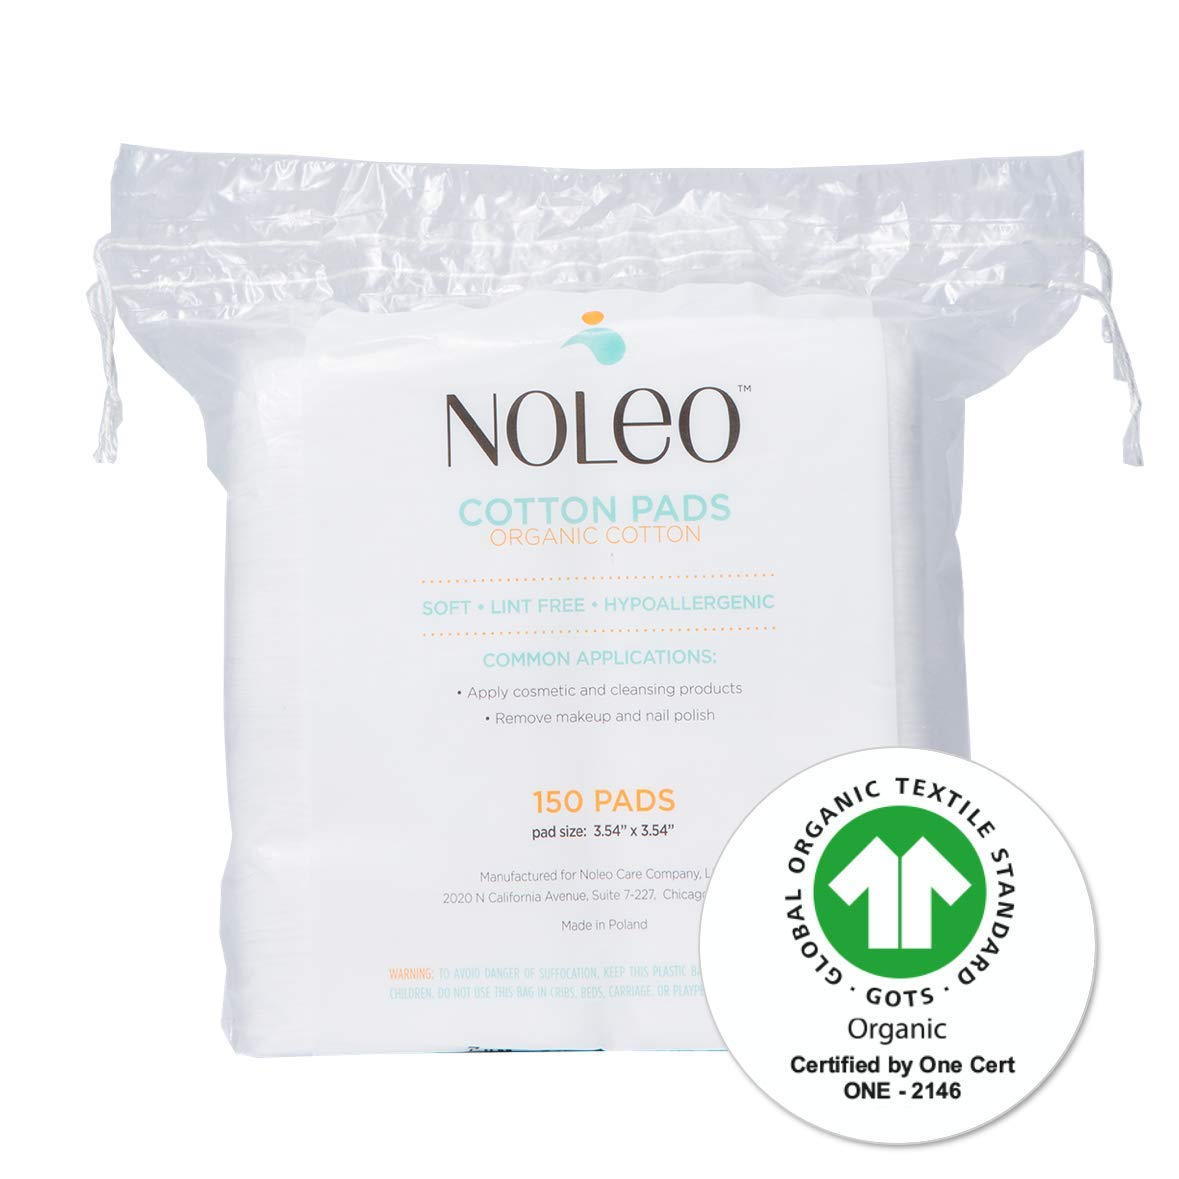 NOLEO Pure Organic Cotton Pads for Face - Lint Free Large Biodegradable Hypoallergenic Makeup Remover Pads for Sensitive Skin (150 Count) - Beauty Personal Care Diaper Change Dry Wipes